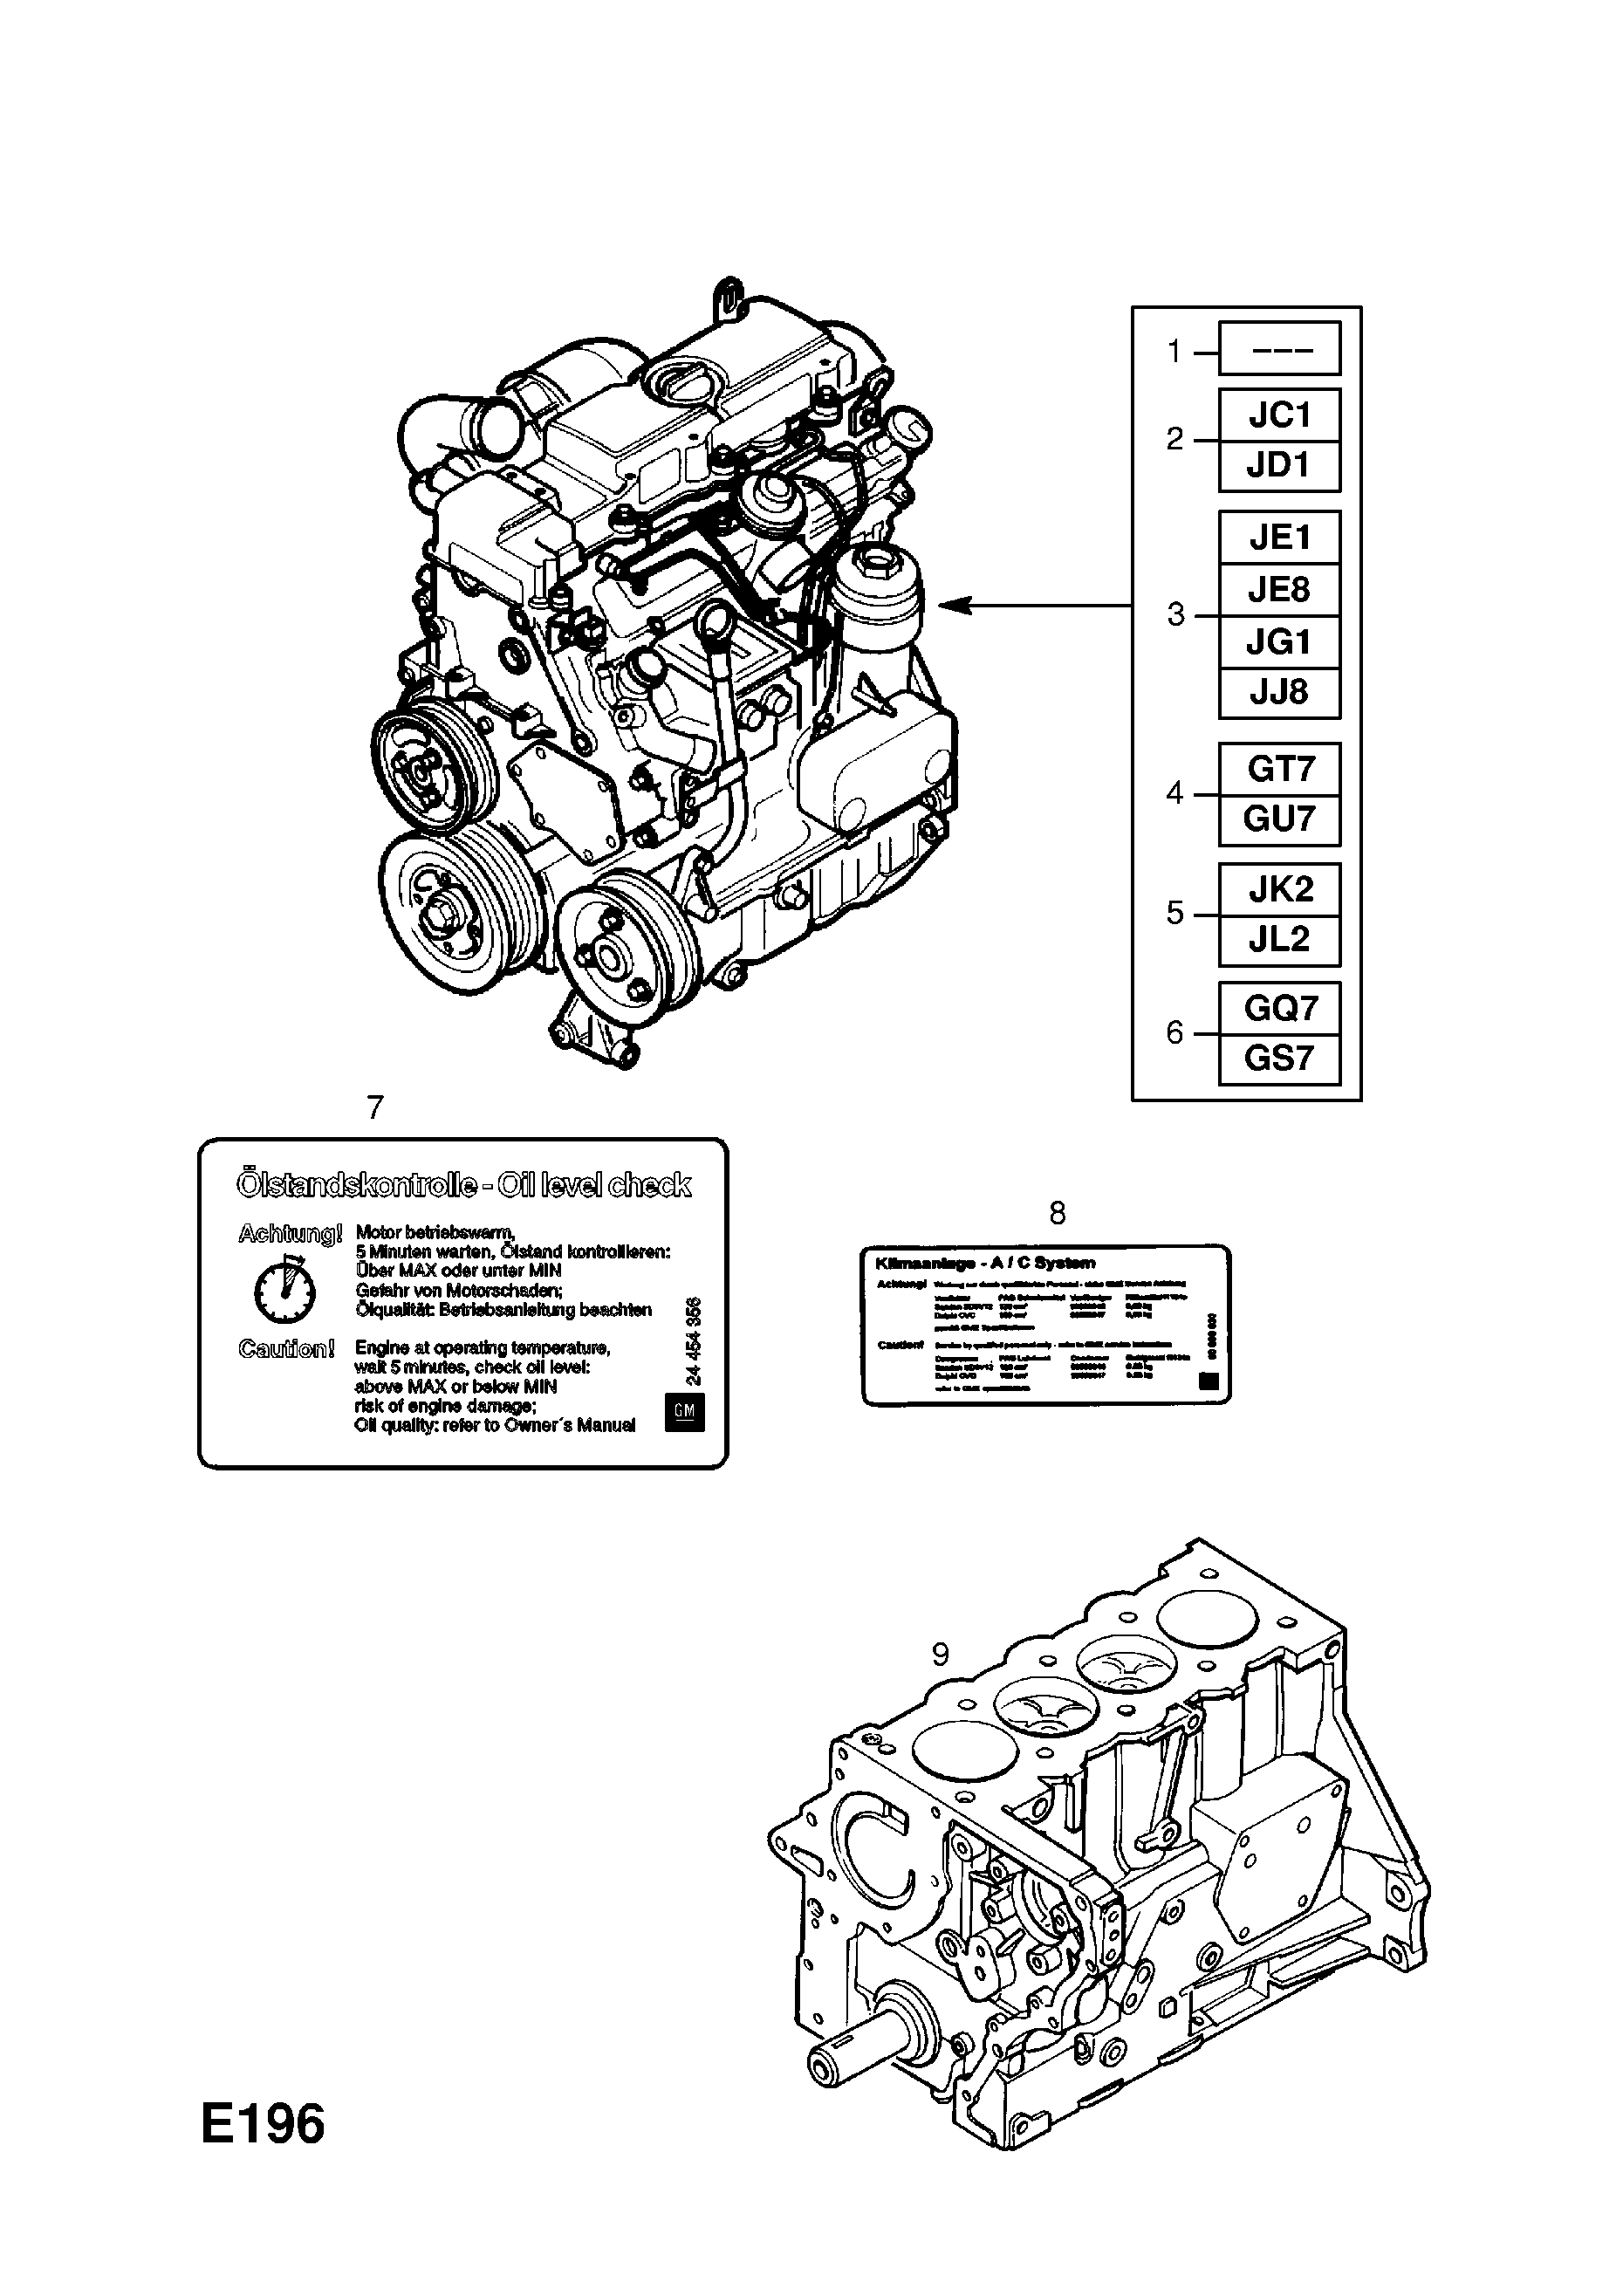 ENGINE ASSEMBLY [USED WITH MANUAL TRANSMISSION] OPEL ASTRA